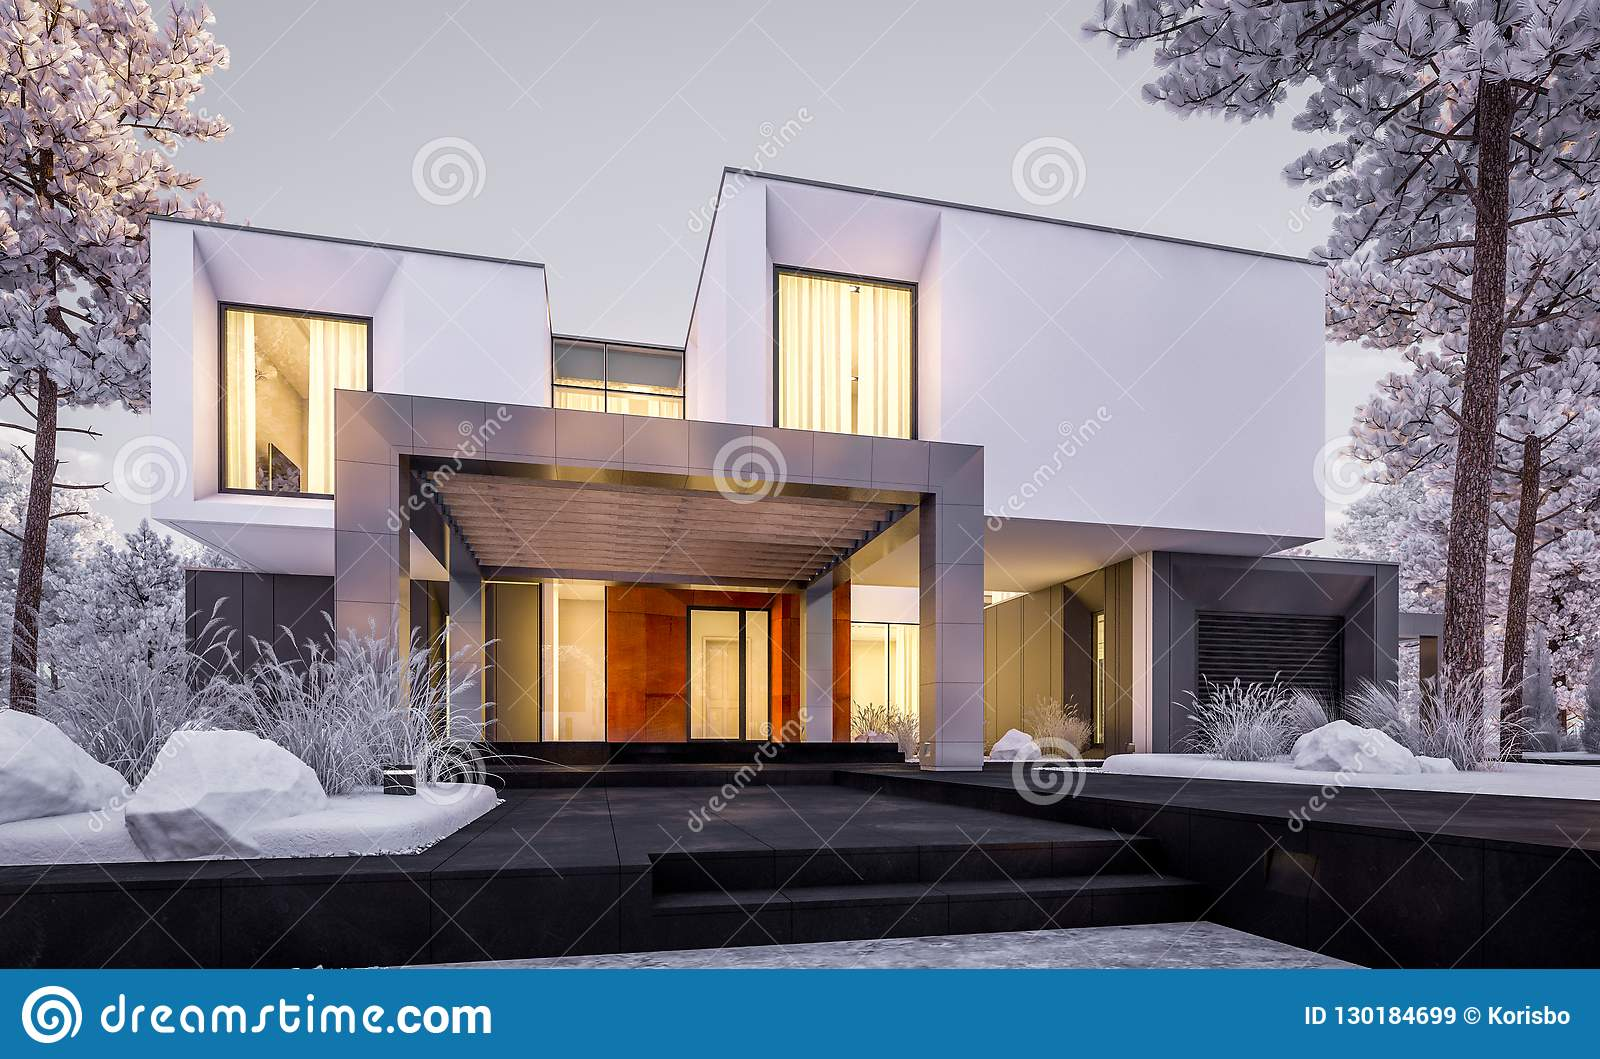 3d Rendering Of Modern House With Garden In Winter Evening Stock